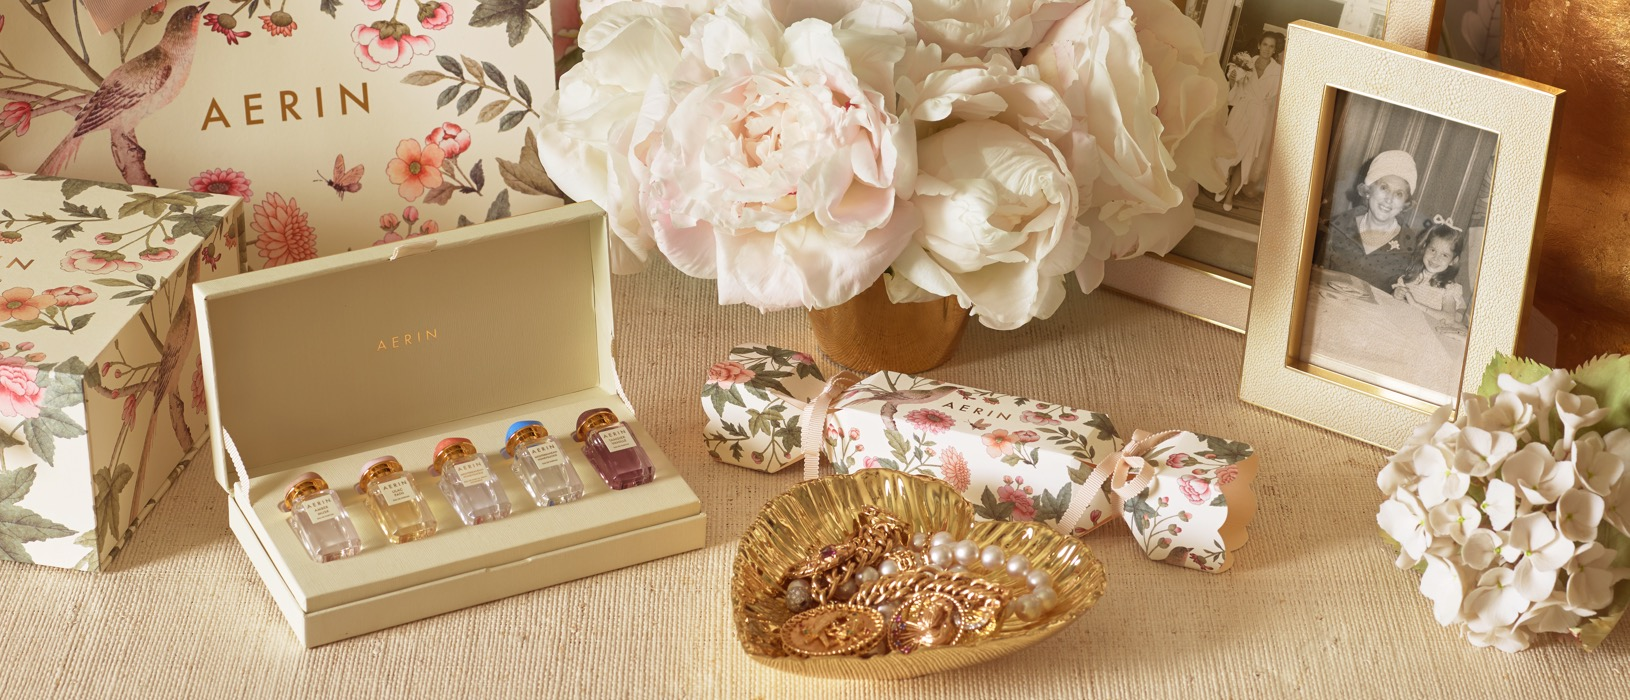 The AERIN Holiday Fragrance Coffret Set, gold heart dish and Cream Shagreen Frame